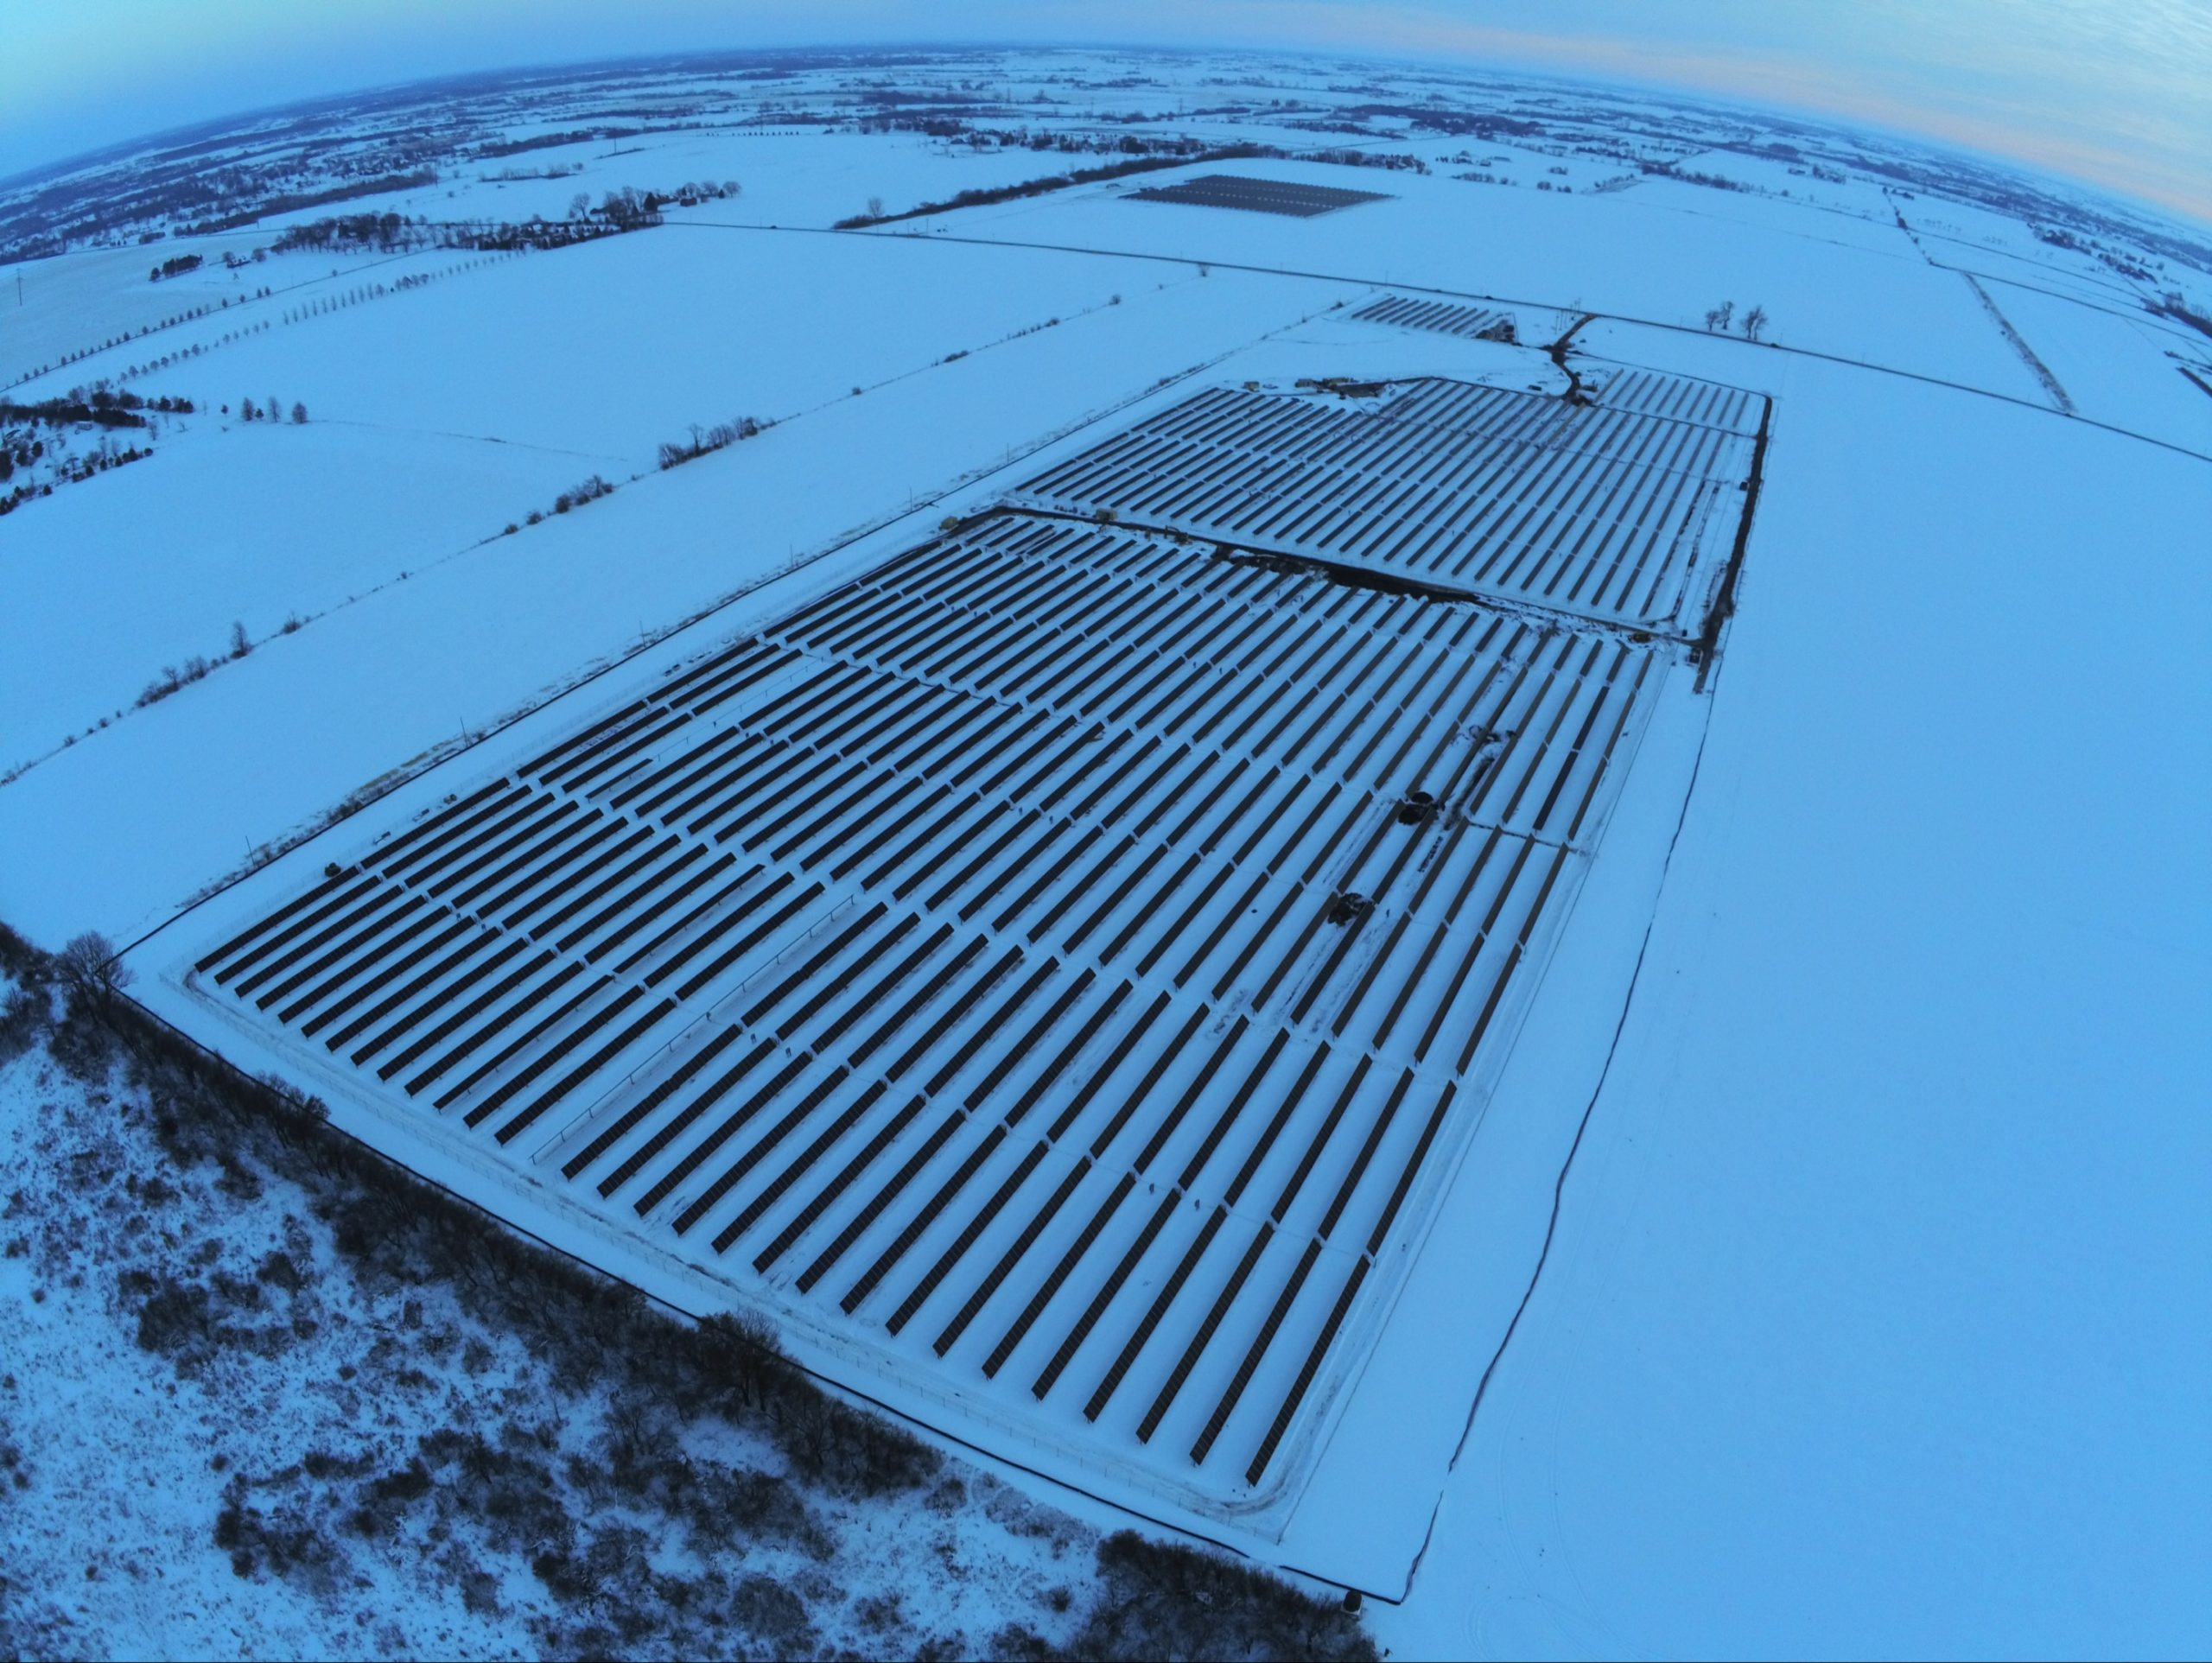 SOLAR TRACKERS + SNOW: Array Technologies' Innovative 'Snow Mode' and Structural Design Approach to Snow Loads